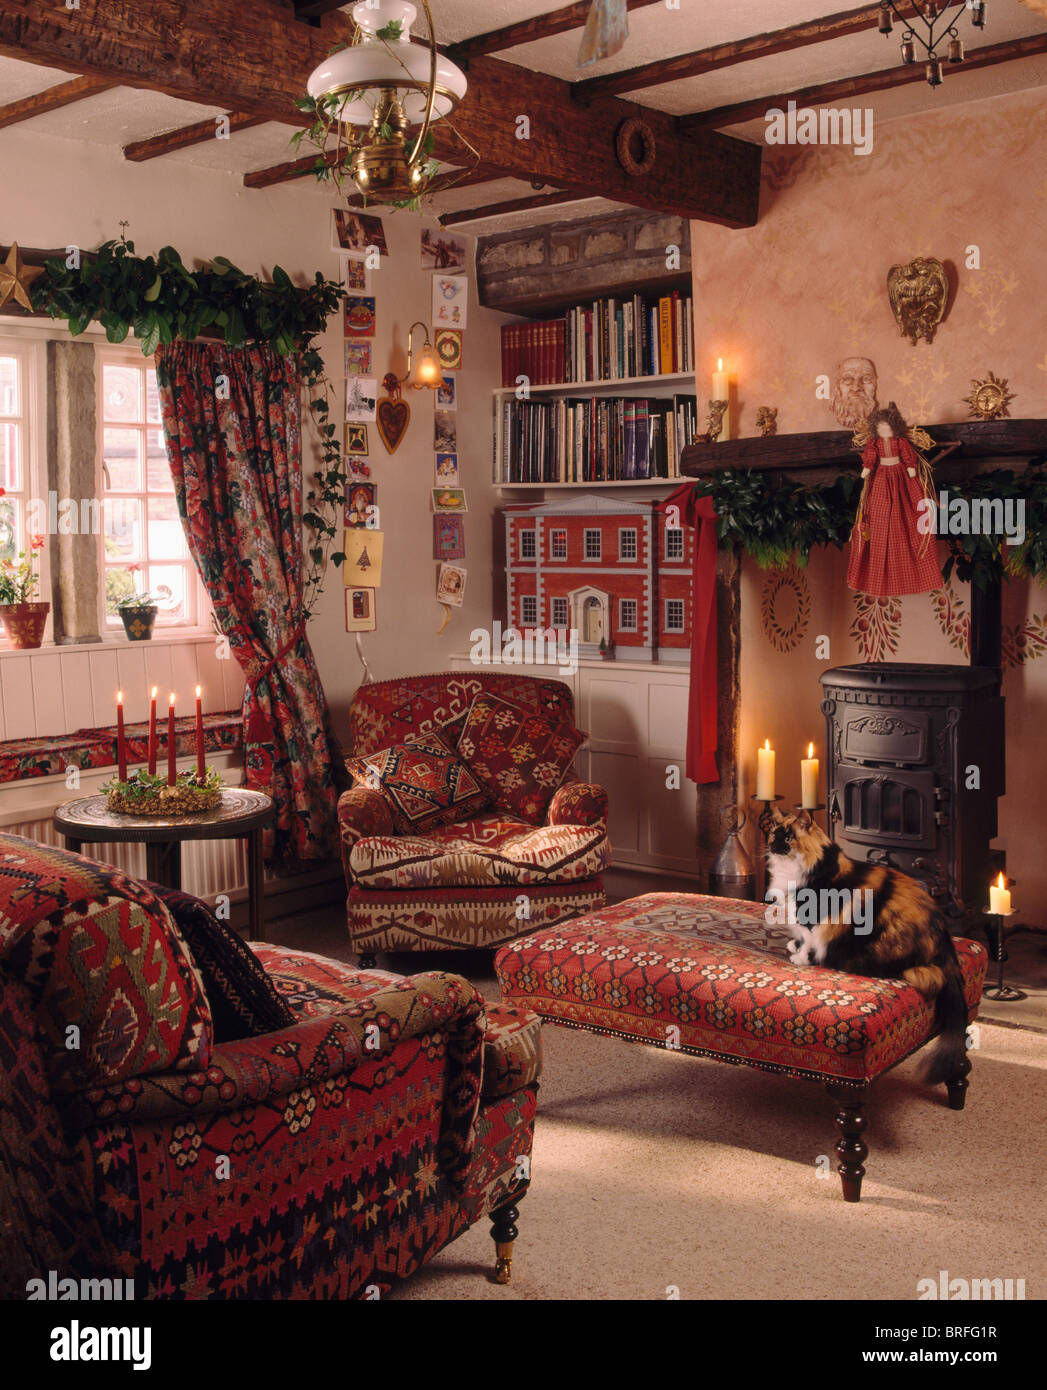 upholstered stools for living room. Cat sitting on red upholstered stool in cottage living room decorated for  Christmas with foliage and lighted candles